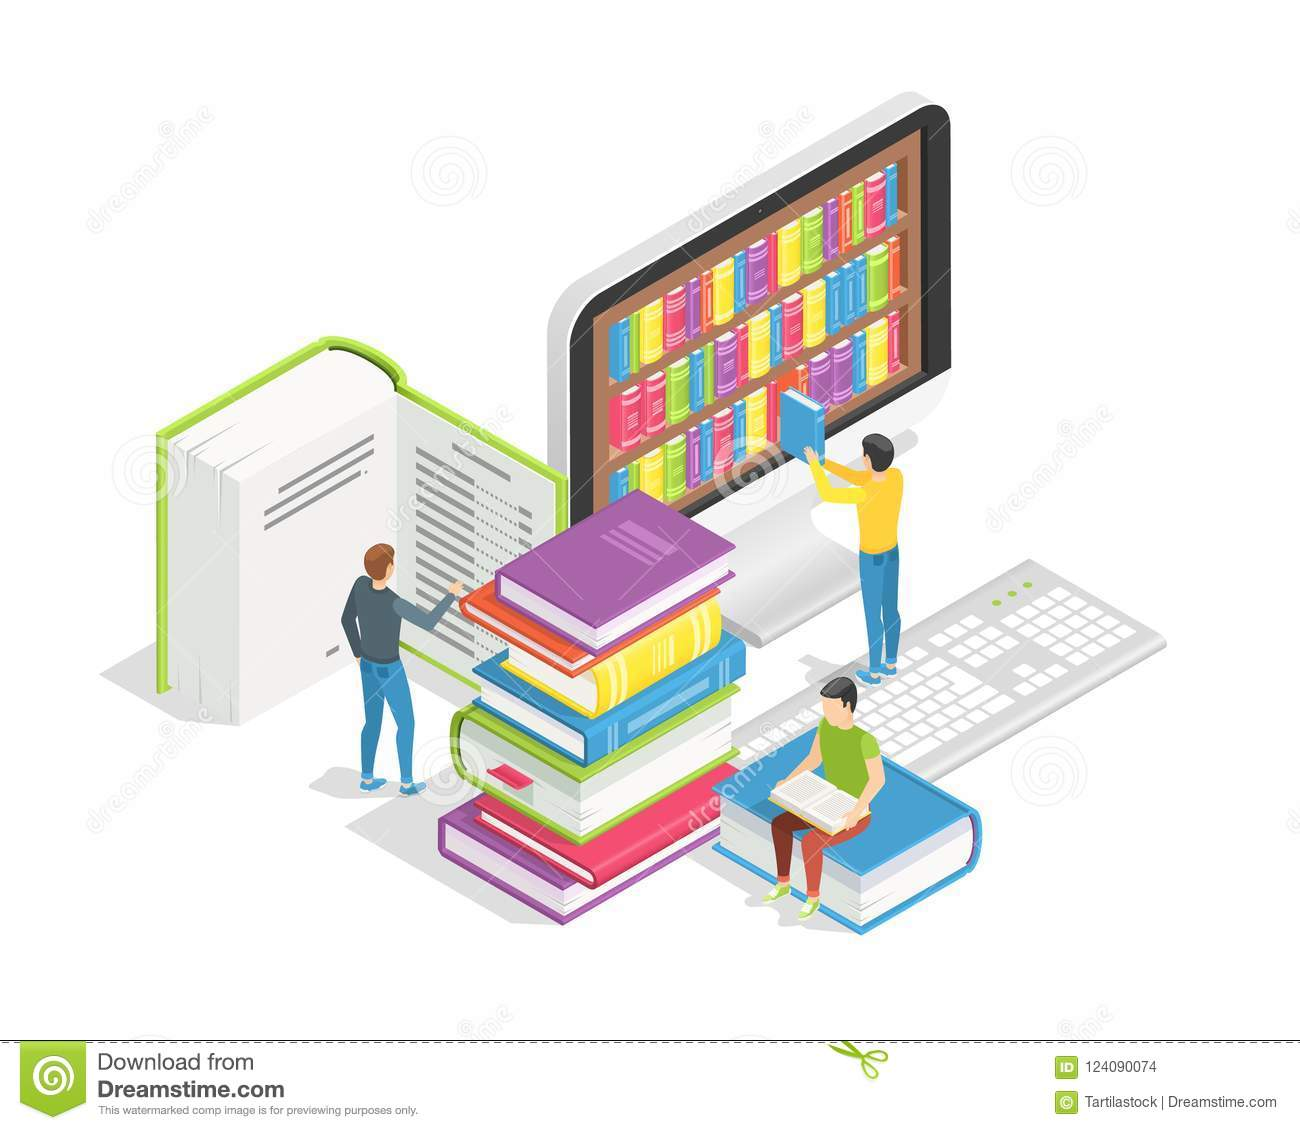 Read The Book Online Book Reading Concept Small People With Huge Books Education